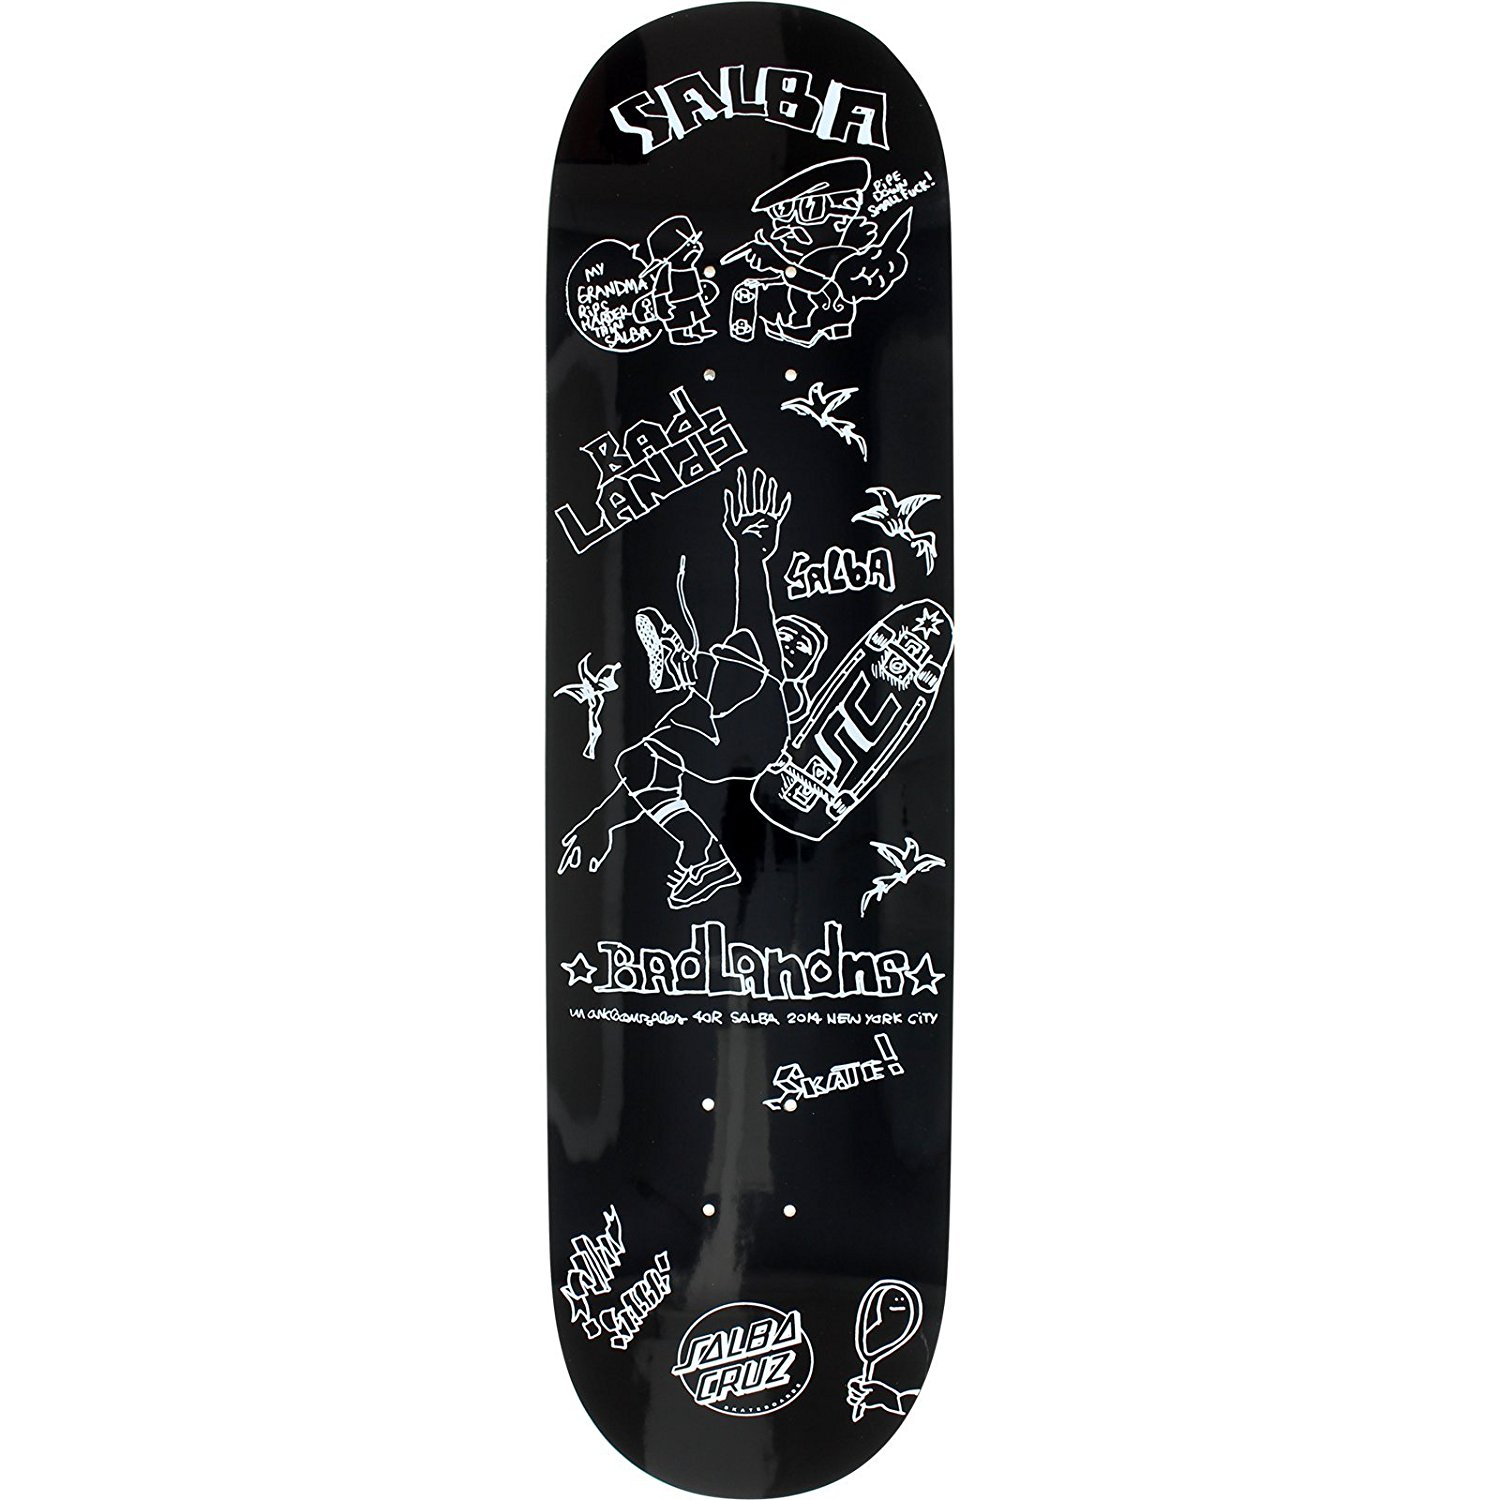 Santa Cruz Steve Alba x Gonz Popsicle Deck -8.37 Asst.Colors Assembled as Complete Skateboard